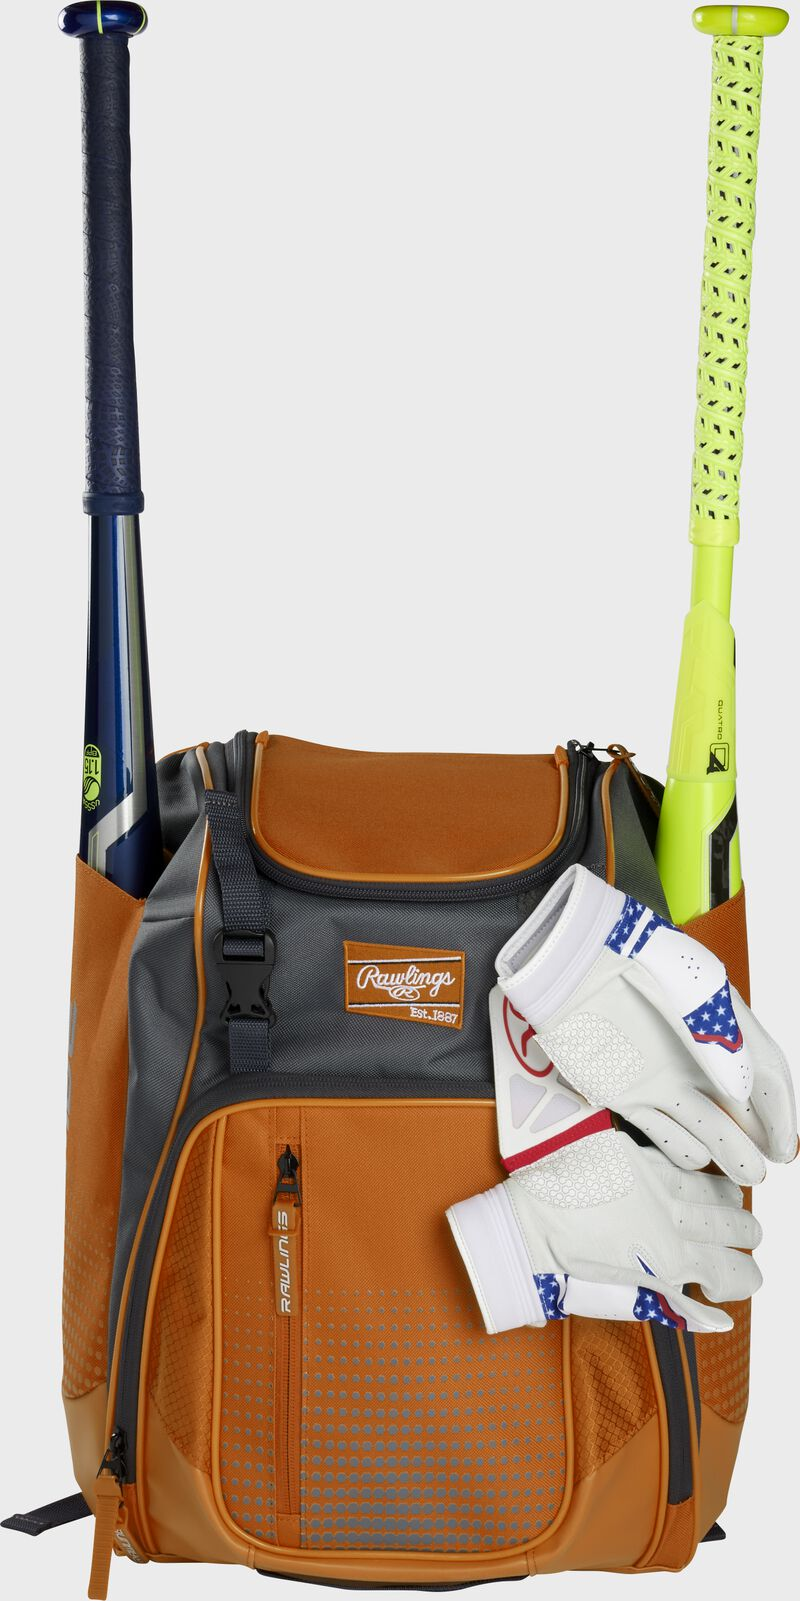 An orange Franchise backpack with two bats in the sides and batting gloves on the front Velcro strap - SKU: FRANBP-O